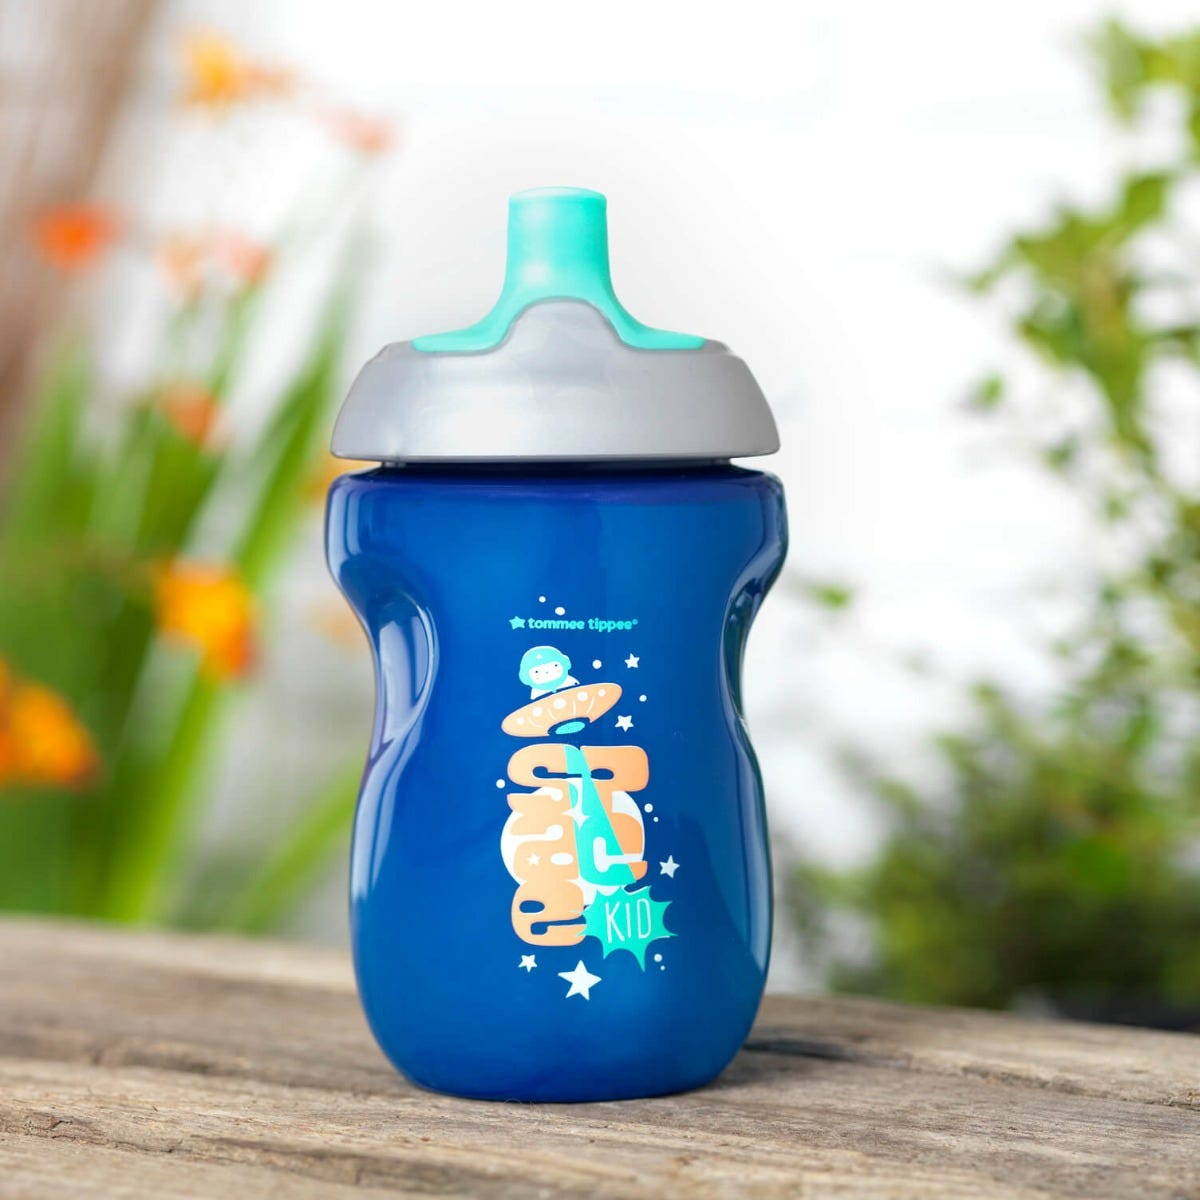 blue-active-Sports-Bottle-12-months-plus-with-space-kid-design-in-garden